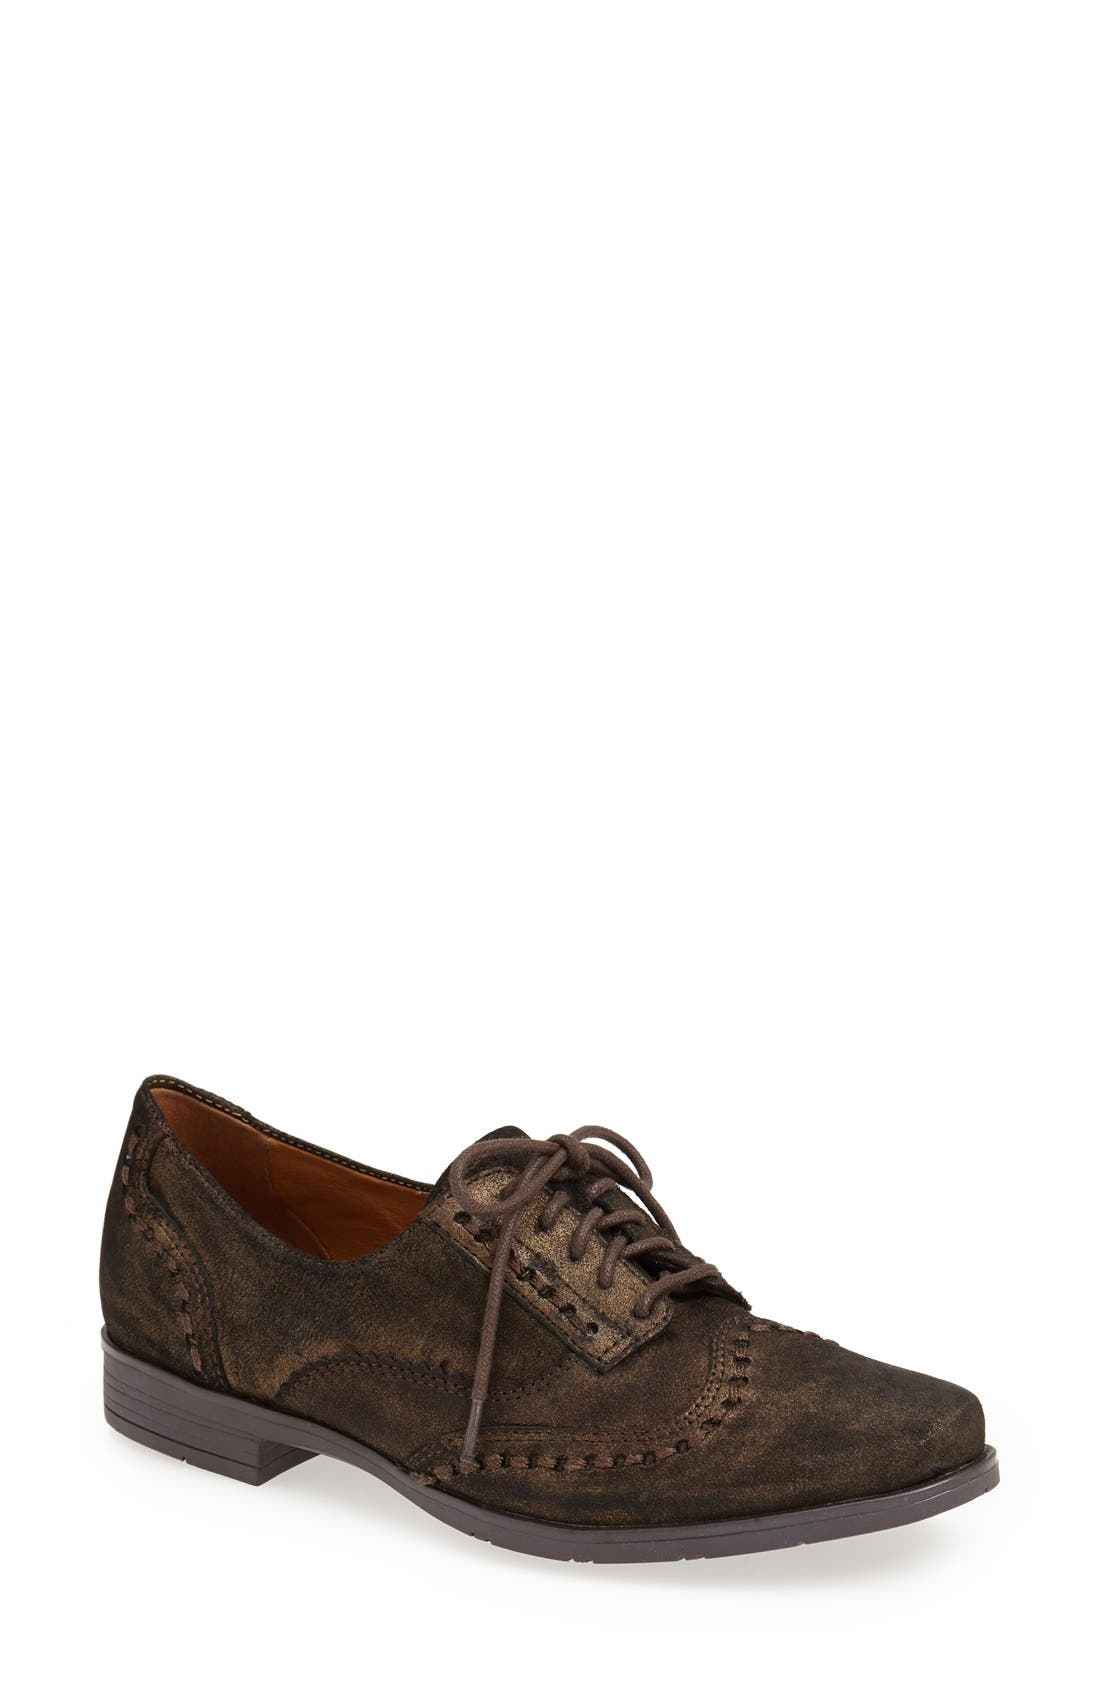 Main Image - Earthies® 'Lisbon' Pearlized Suede Lace-Up Flat (Women)